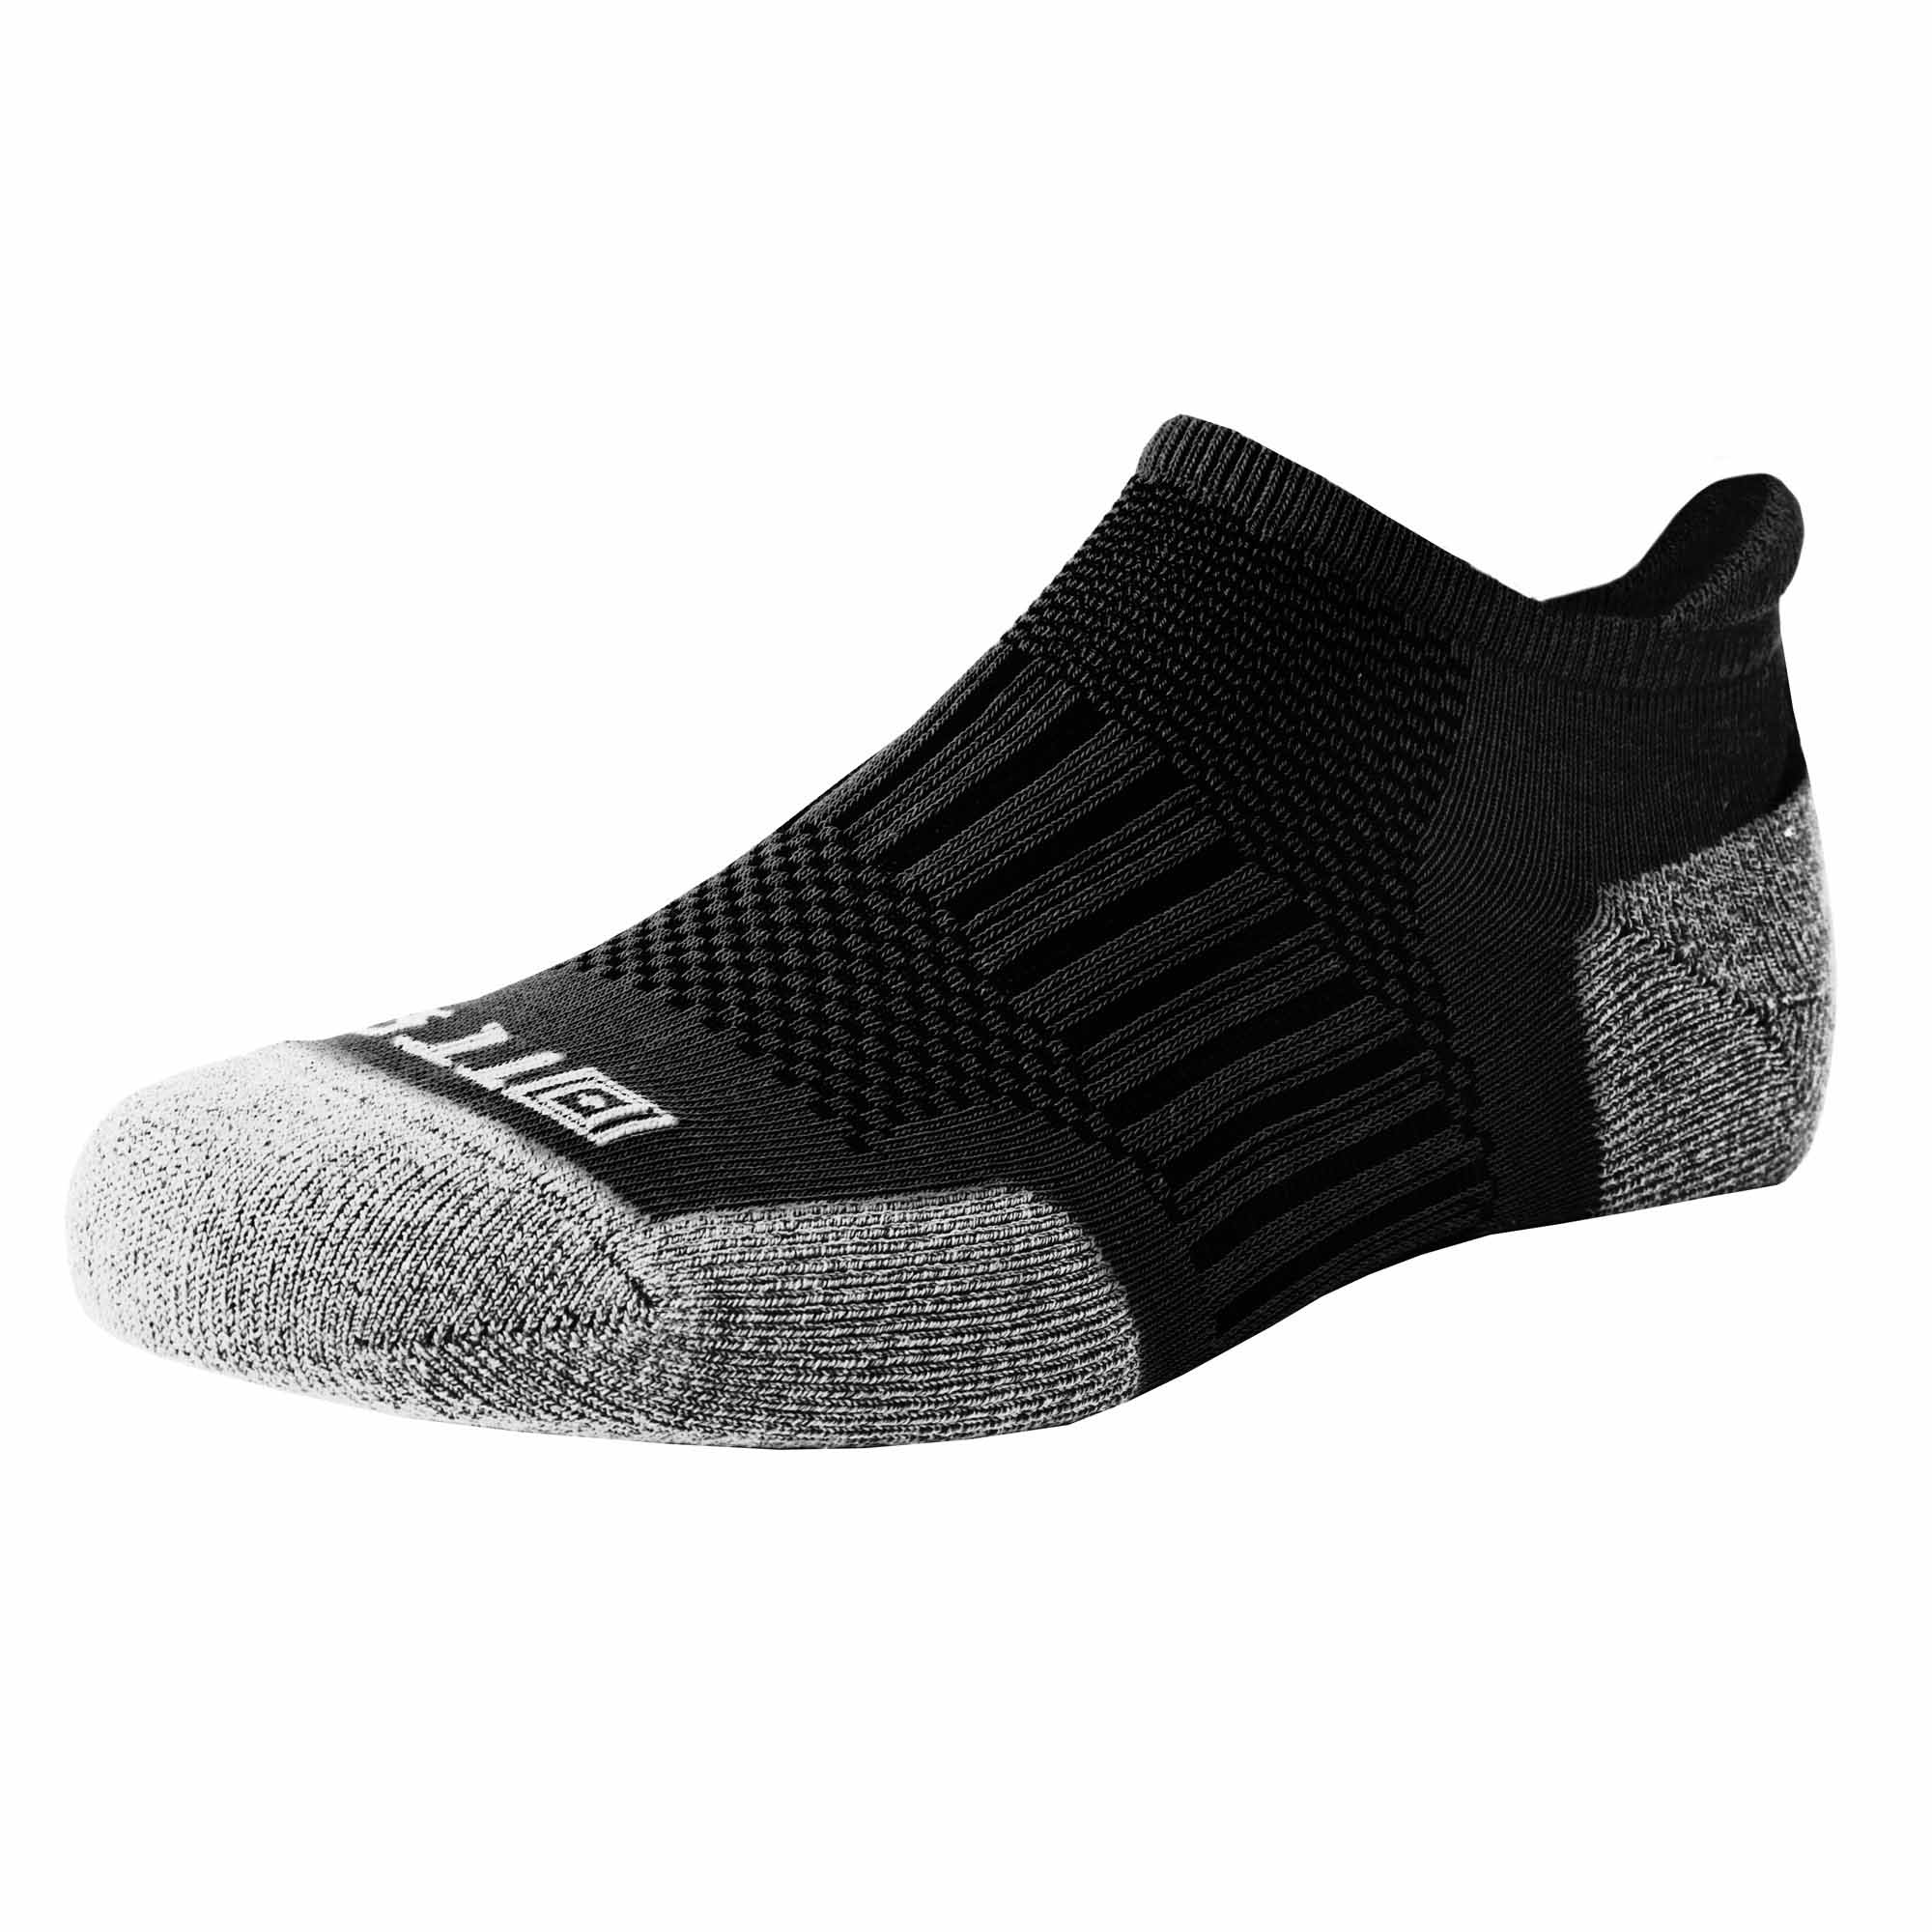 5.11 RECON® Ankle Sock from 5.11 Tactical (Black)